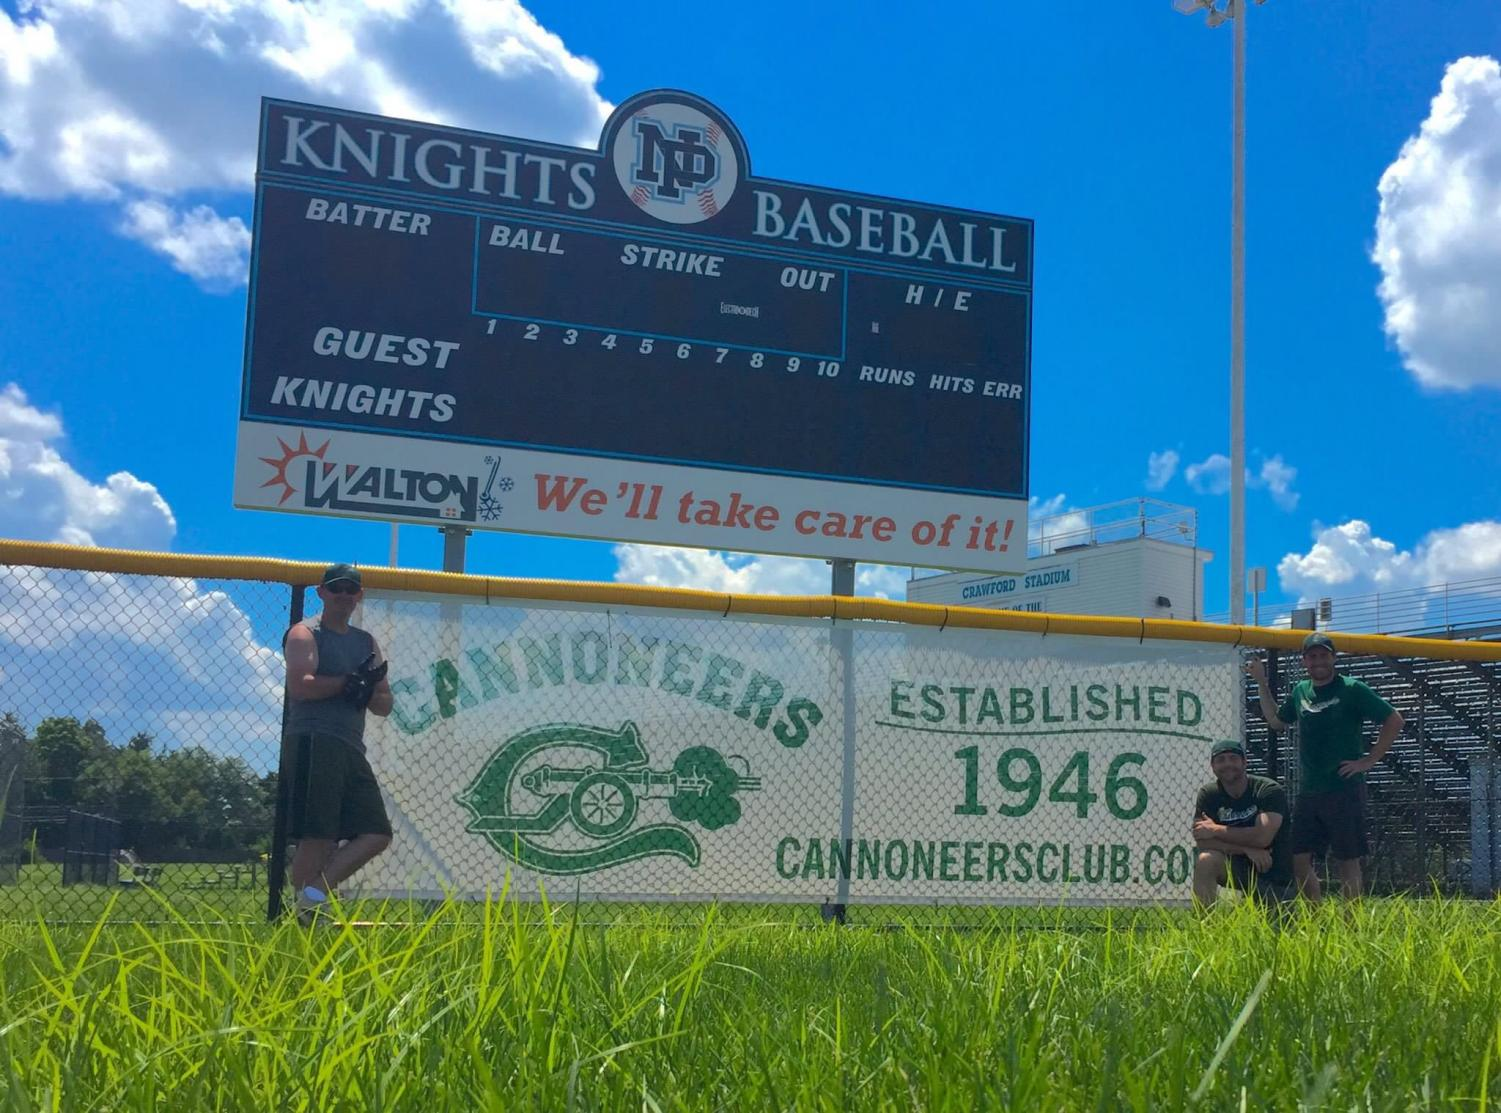 Banners hang around ball field fences and stadium sidelines for the club's sponsorships to North Penn athletic programs.